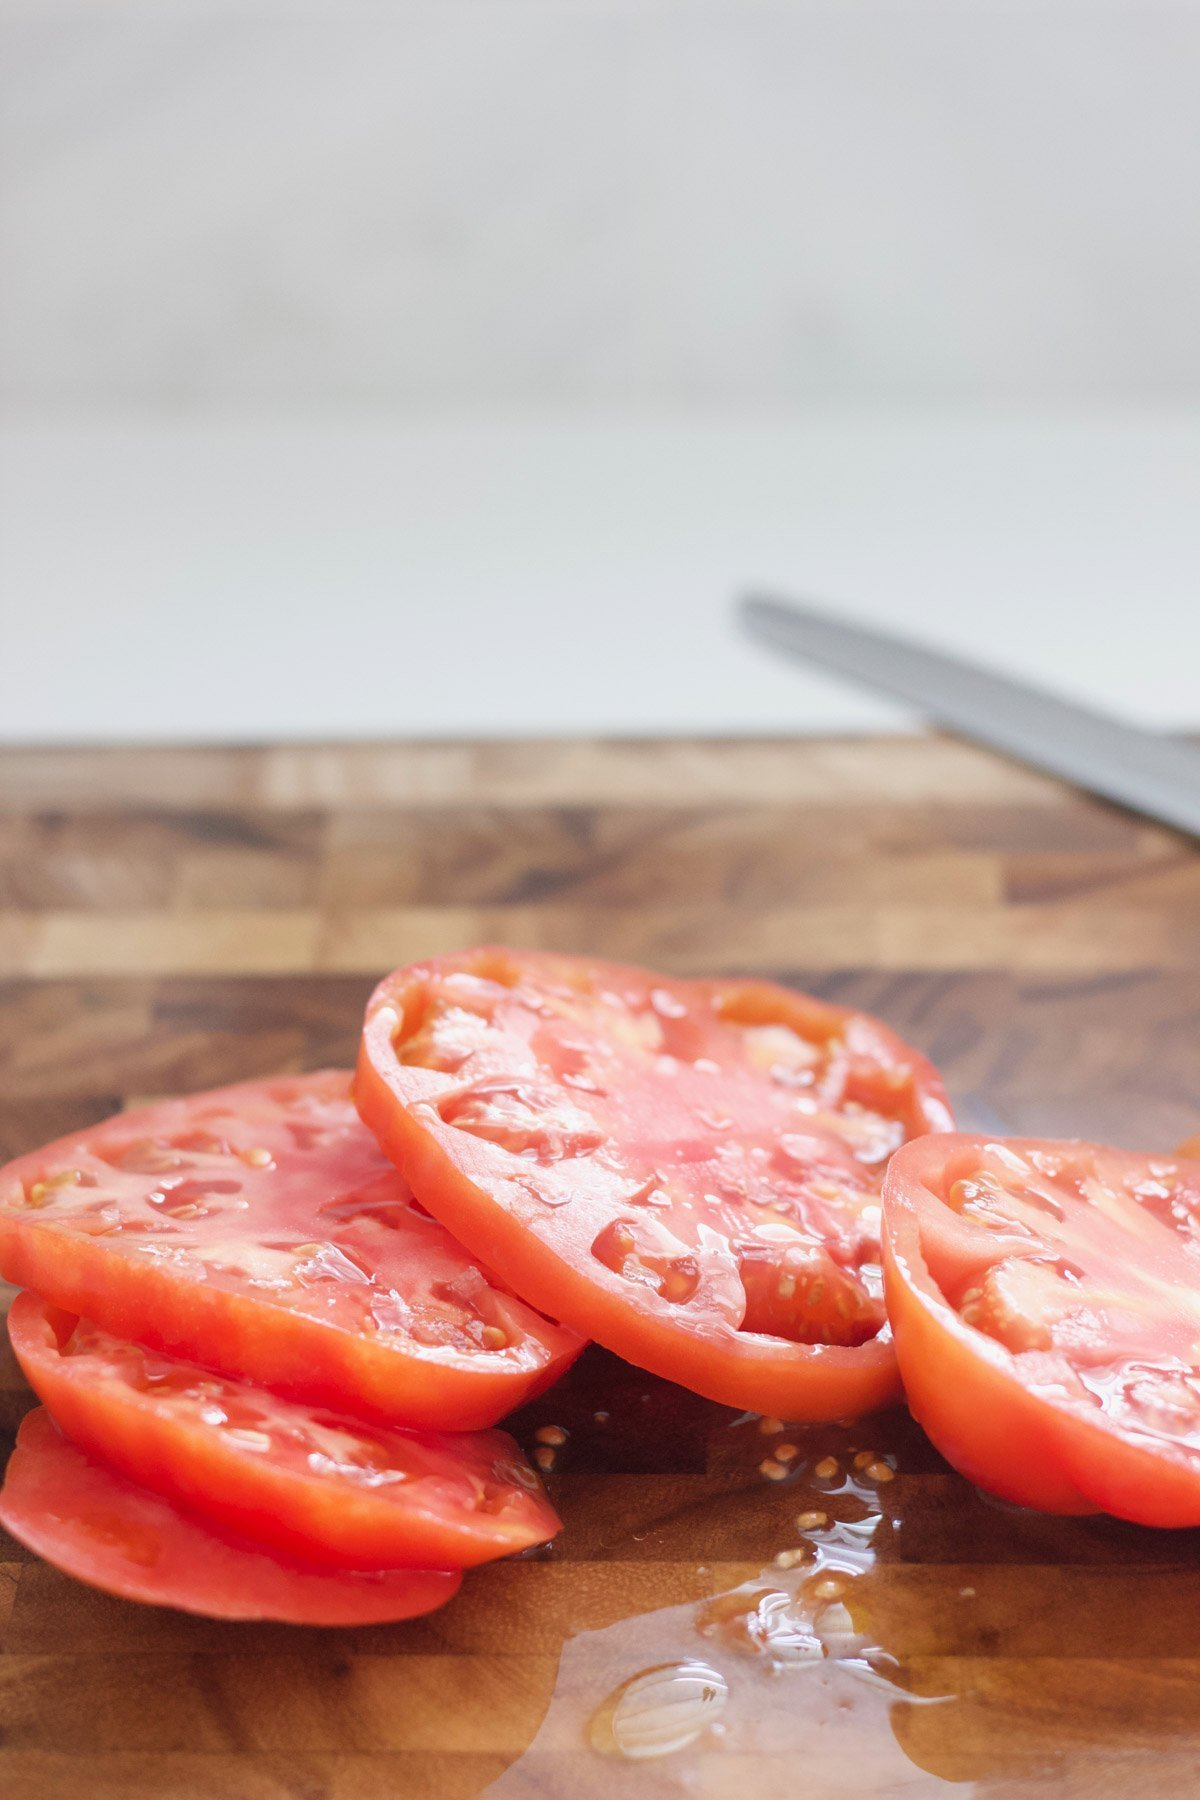 Sliced heirloom tomatoes on a cutting board